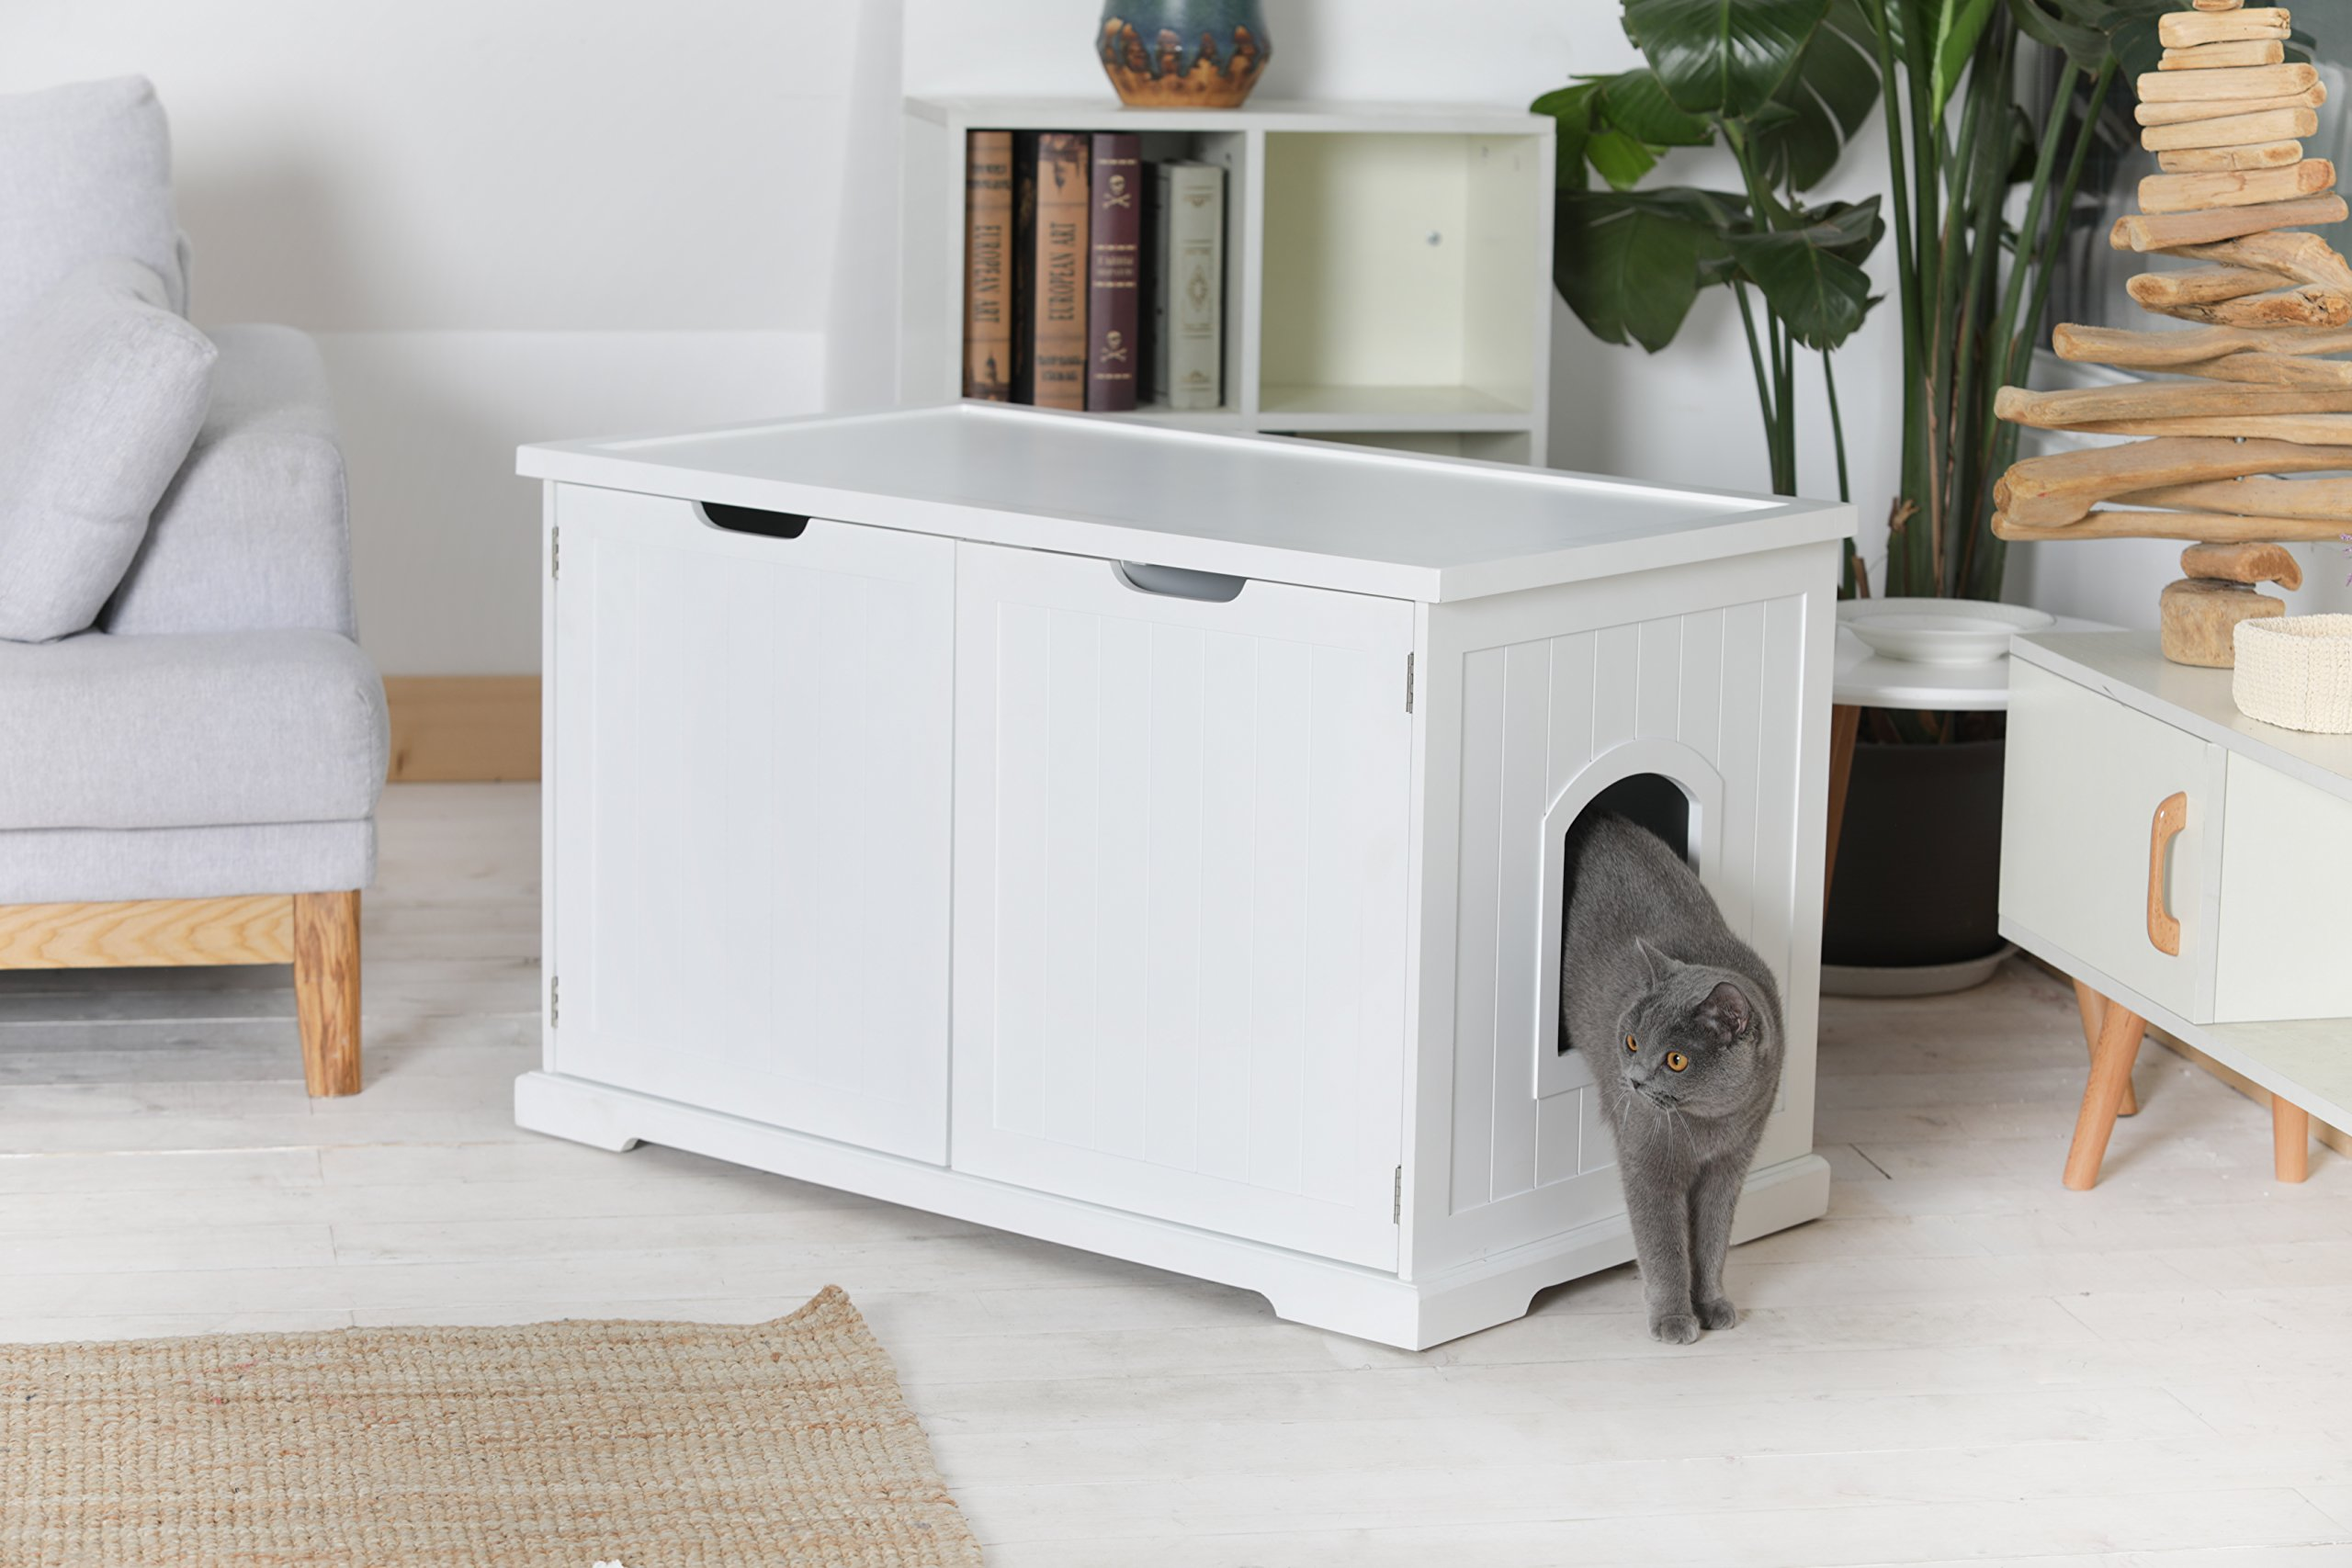 Merry Products Cat Washroom Bench, White by Merry (Image #7)